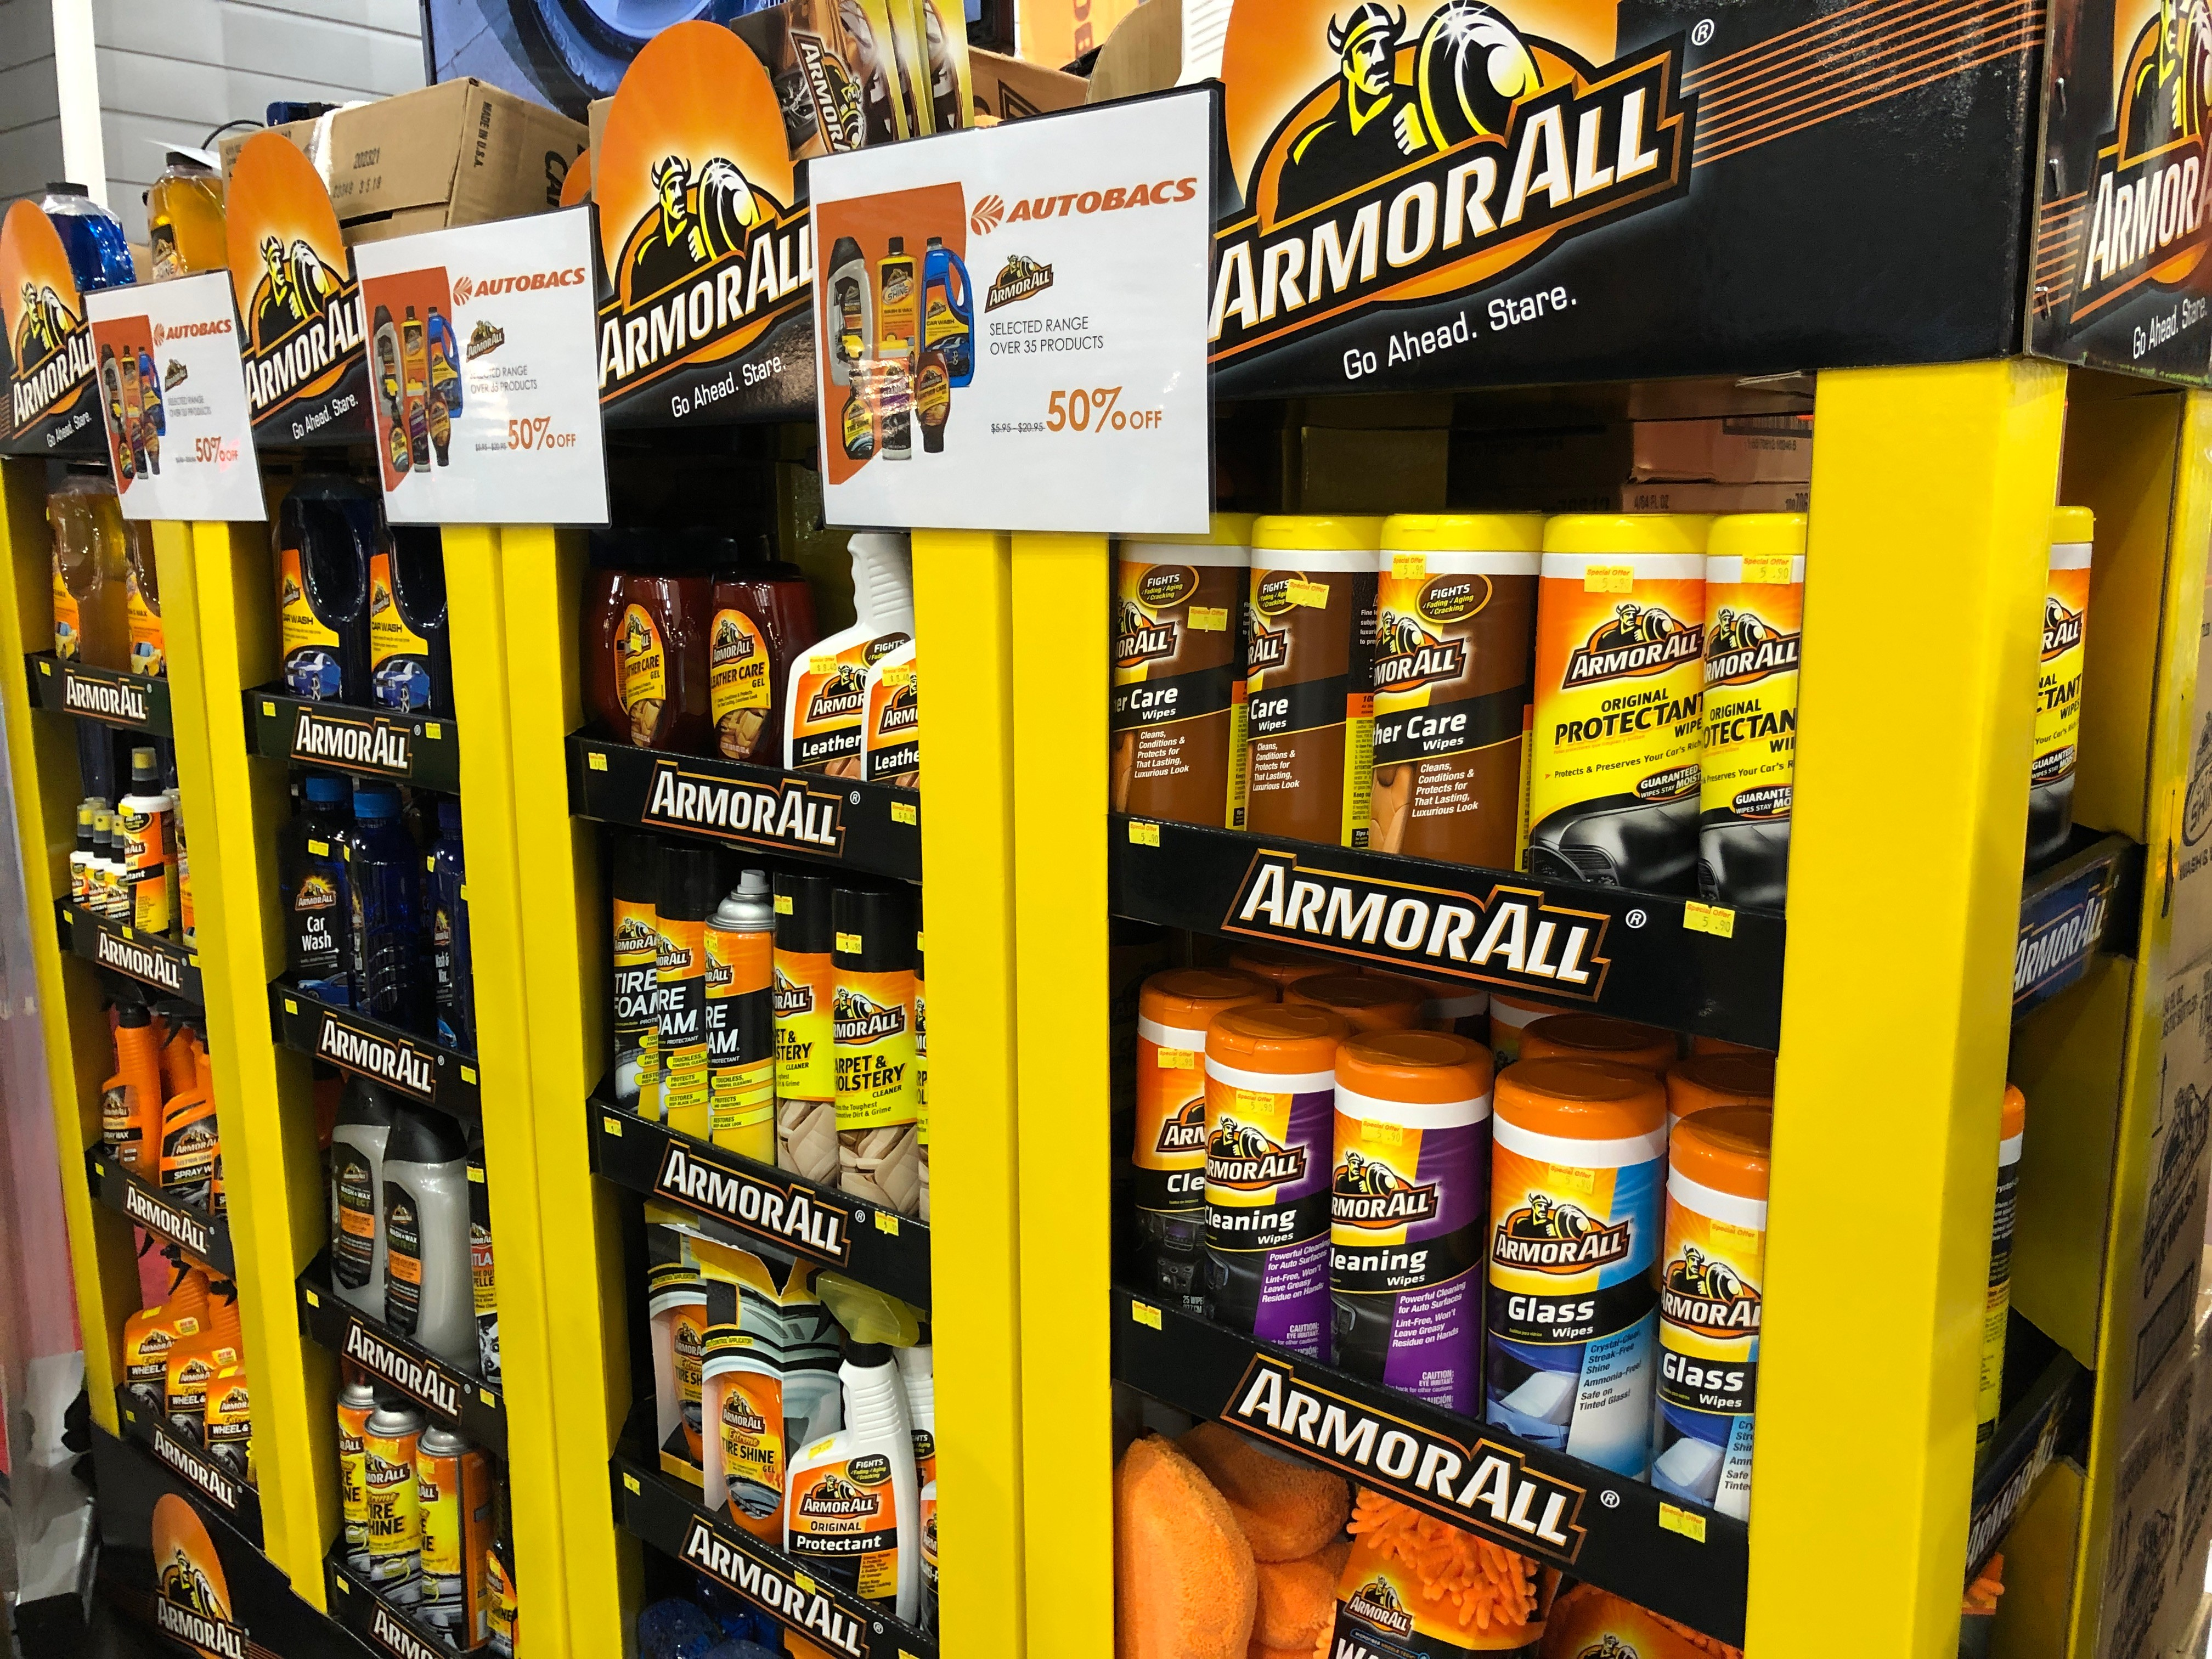 cars@expo car grooming products armor all